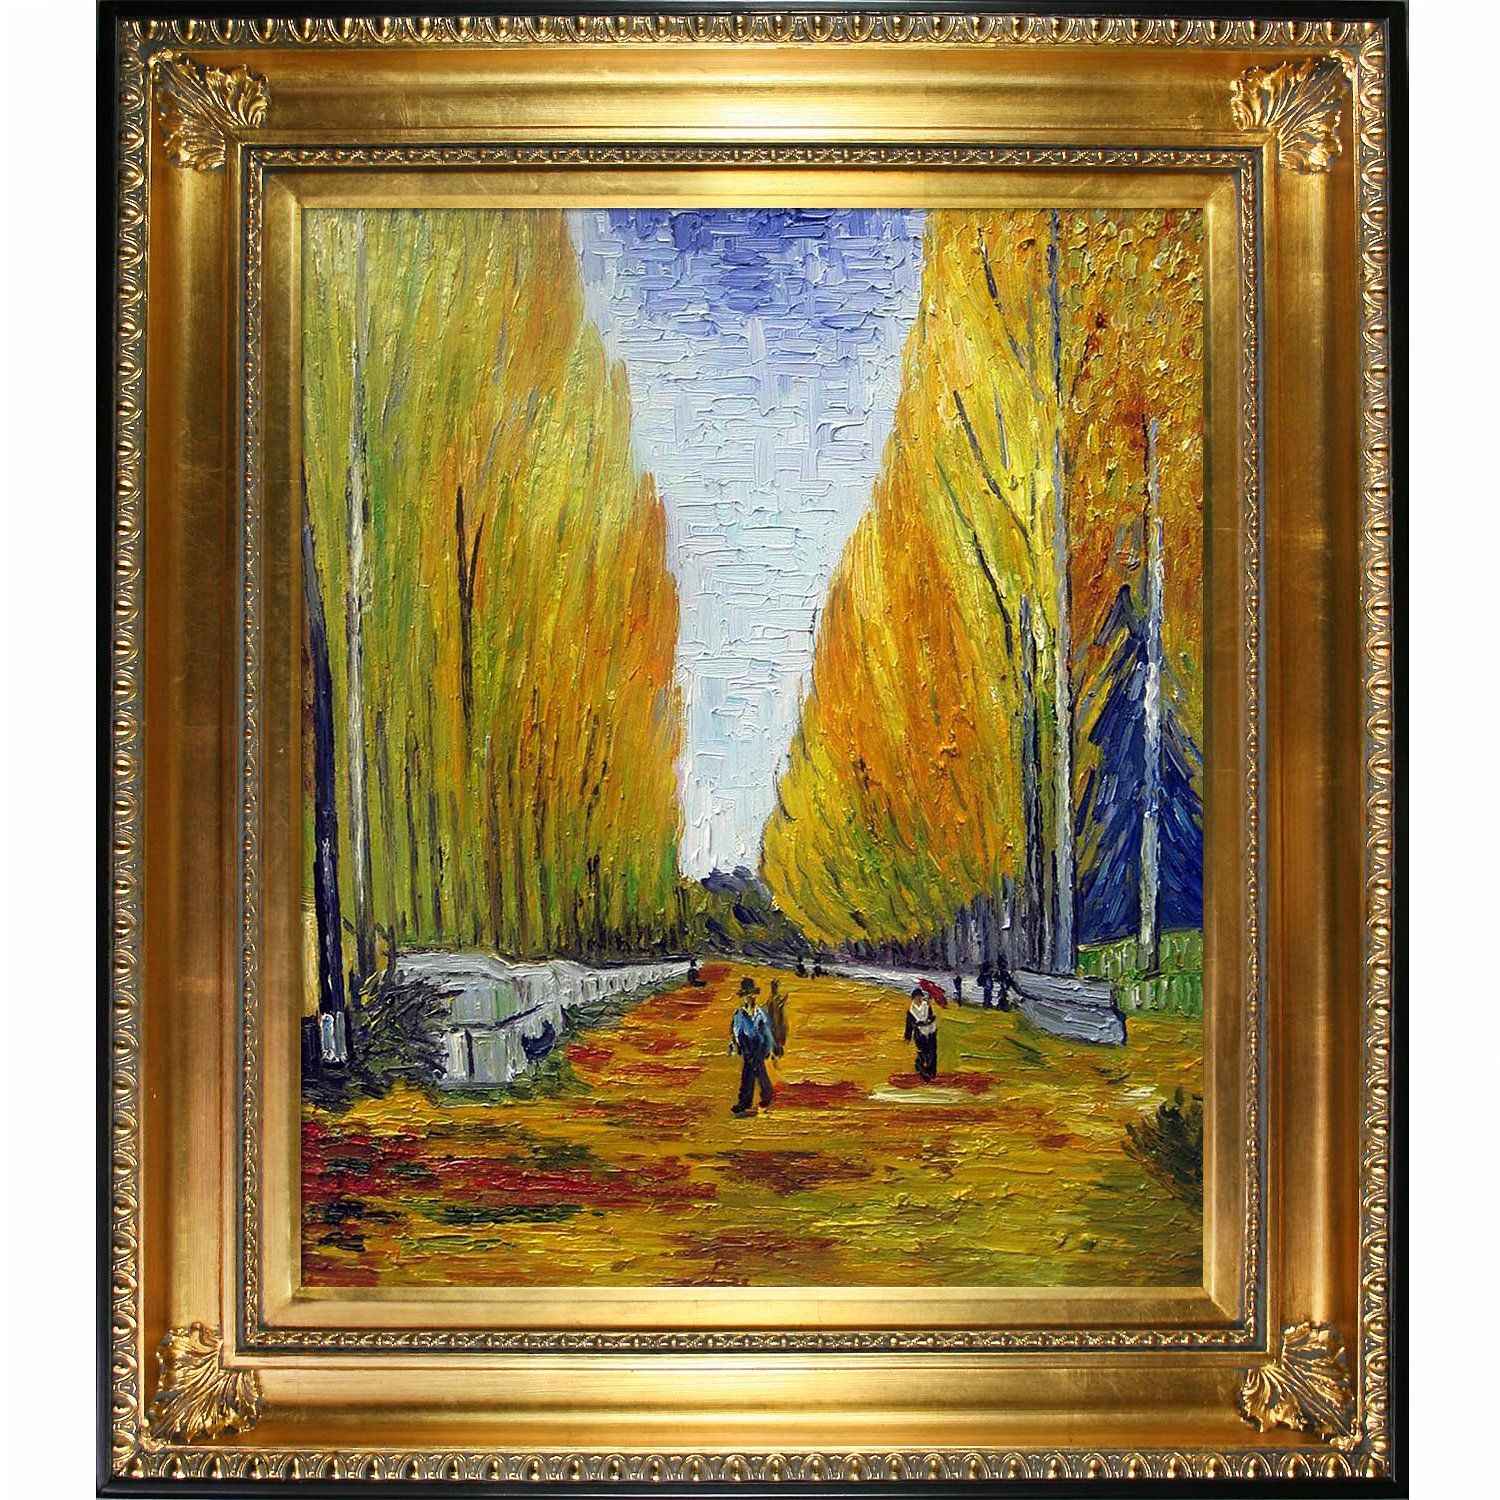 overstockArt The Allee of Alyscamps 1888 Artwork by Van Gogh with Regency Gold Frame